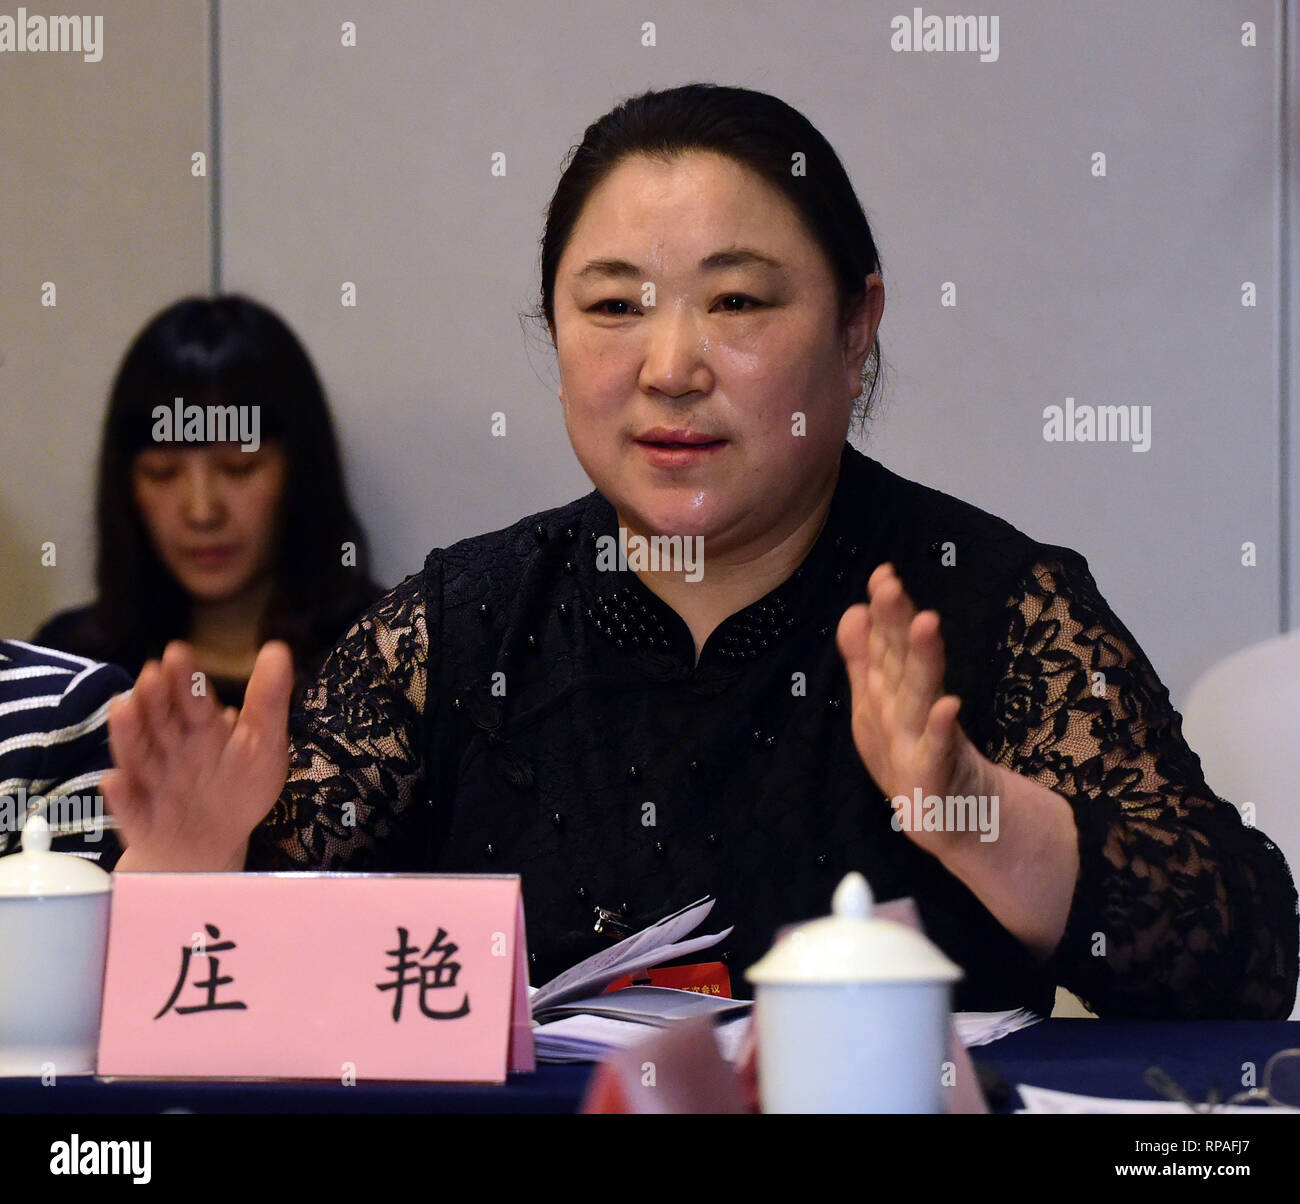 (190221) -- ANSHAN, Feb. 21, 2019 (Xinhua) -- File photo taken on March 6, 2017 shows Zhuang Yan, deputy to the 12th National People's Congress (NPC), speaking on a panel discussion with other deputies from northeast China's Liaoning Province in Beijing, capital of China. Zhuang Yan, 47, is a sanitation worker with Hengjie Sanitation Company in the Lishan District of Anshan city.     In addition to performing well in her own work, Zhuang always thinks about how to better play her role as an NPC deputy.      Whenever she goes to a northern city, Zhuang pays much attention to local curbs and the - Stock Image